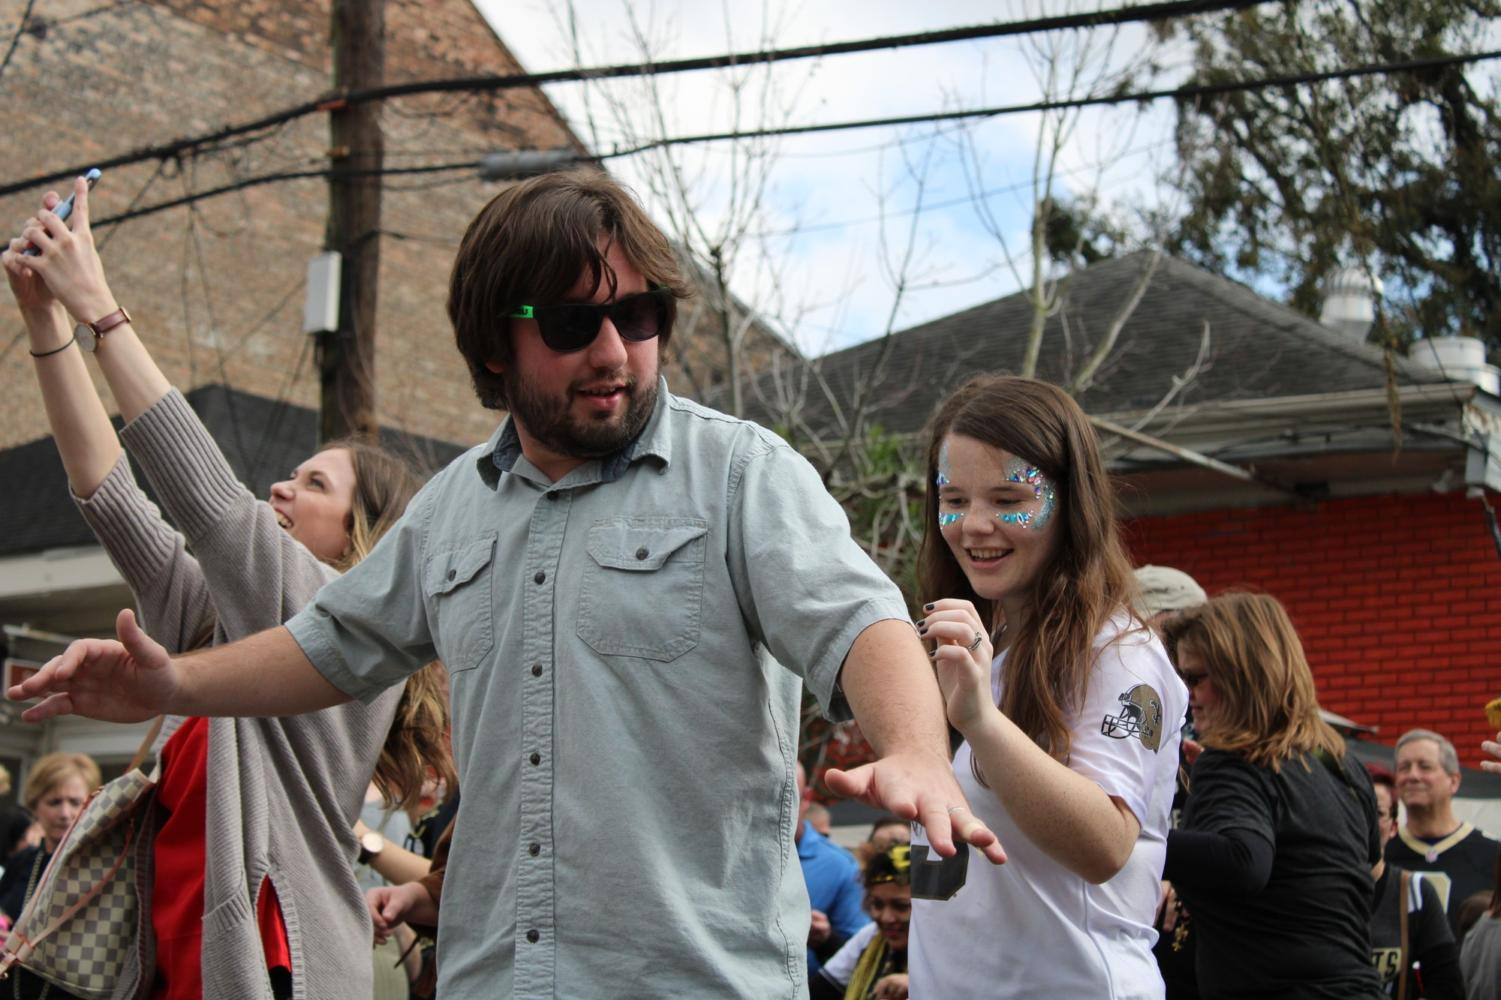 Who+Dat+fans+danced+their+Super+Bowl+sorrows+away+on+the+3300+block+of+Magazine+Street.+Photo+credit%3A+Madison+Mcloughlin